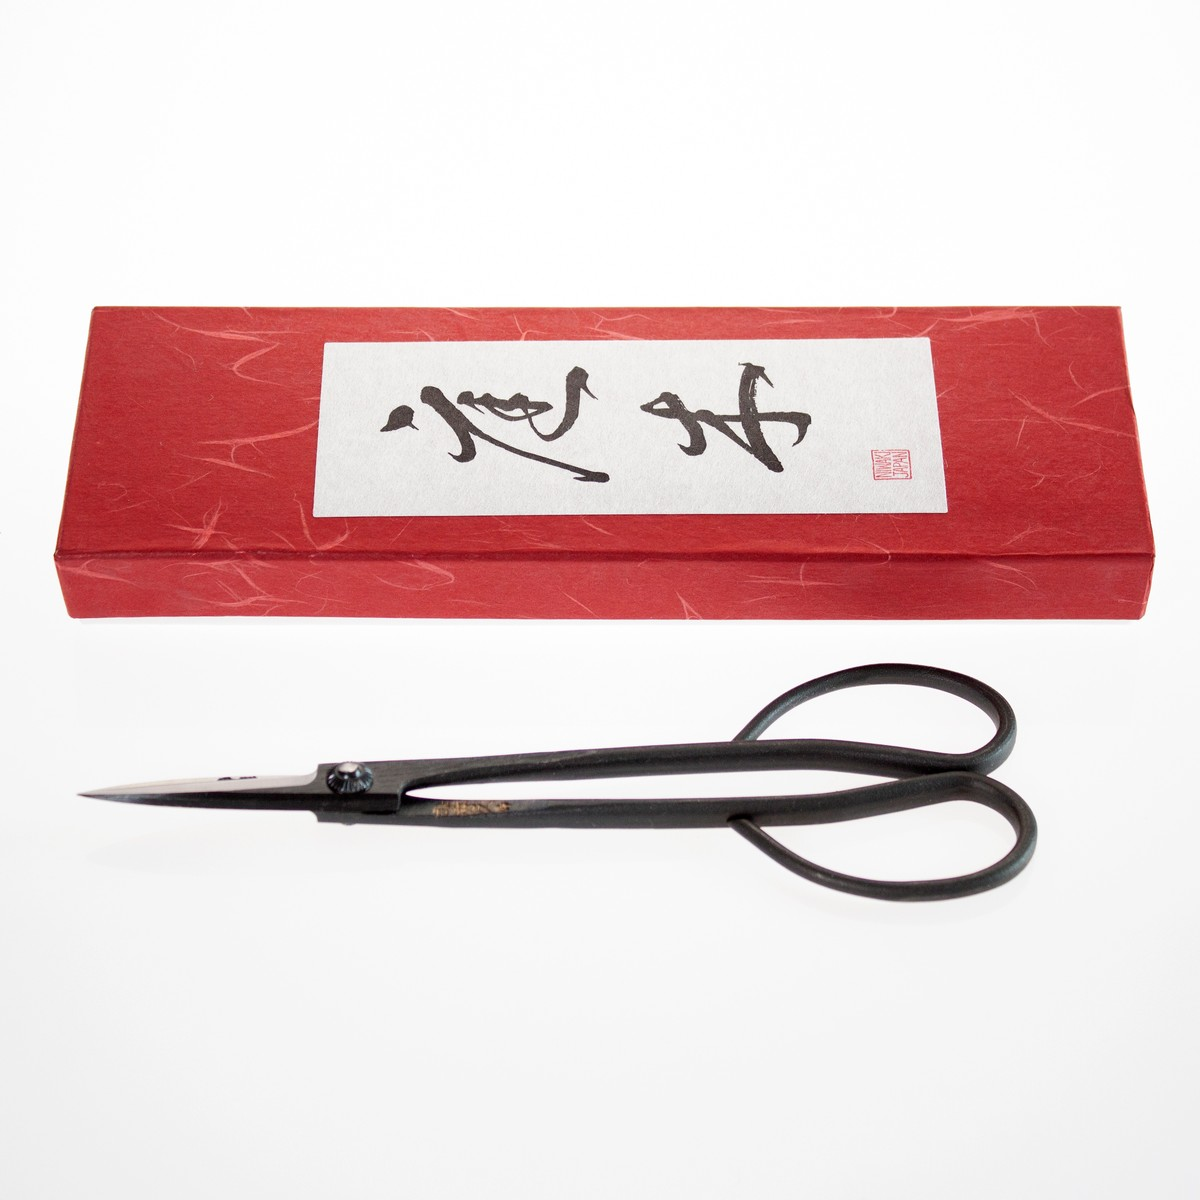 Photo of Sentei Bonsai Scissors